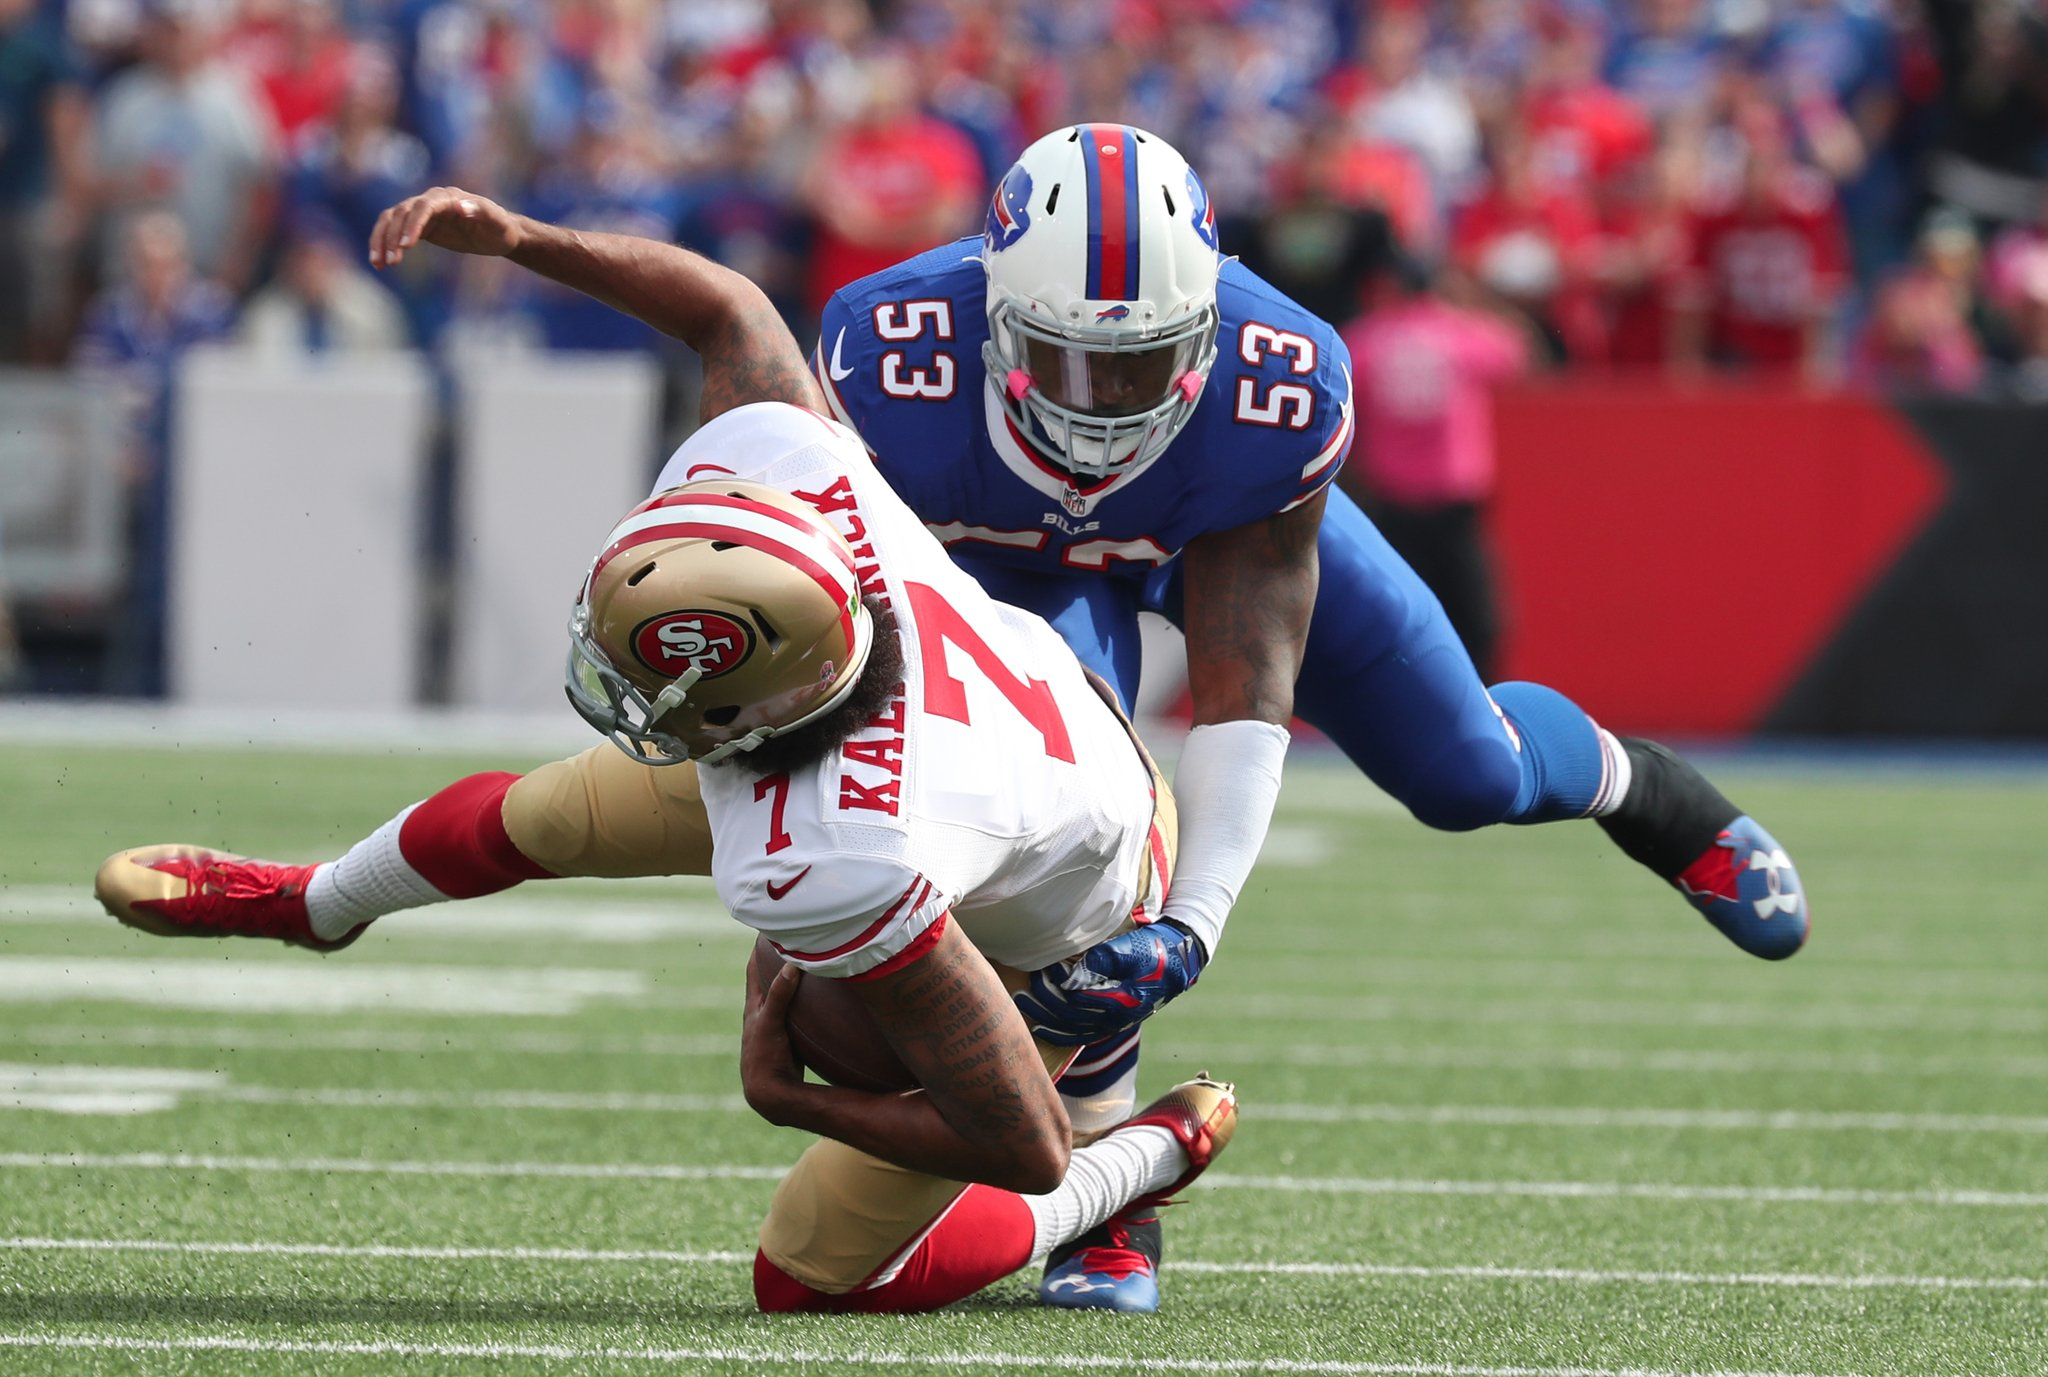 Zach Brown sacks Colin Kaepernick in the first half of the Bills game against the 49ers at New Era Field. (James P. McCoy/Buffalo News)